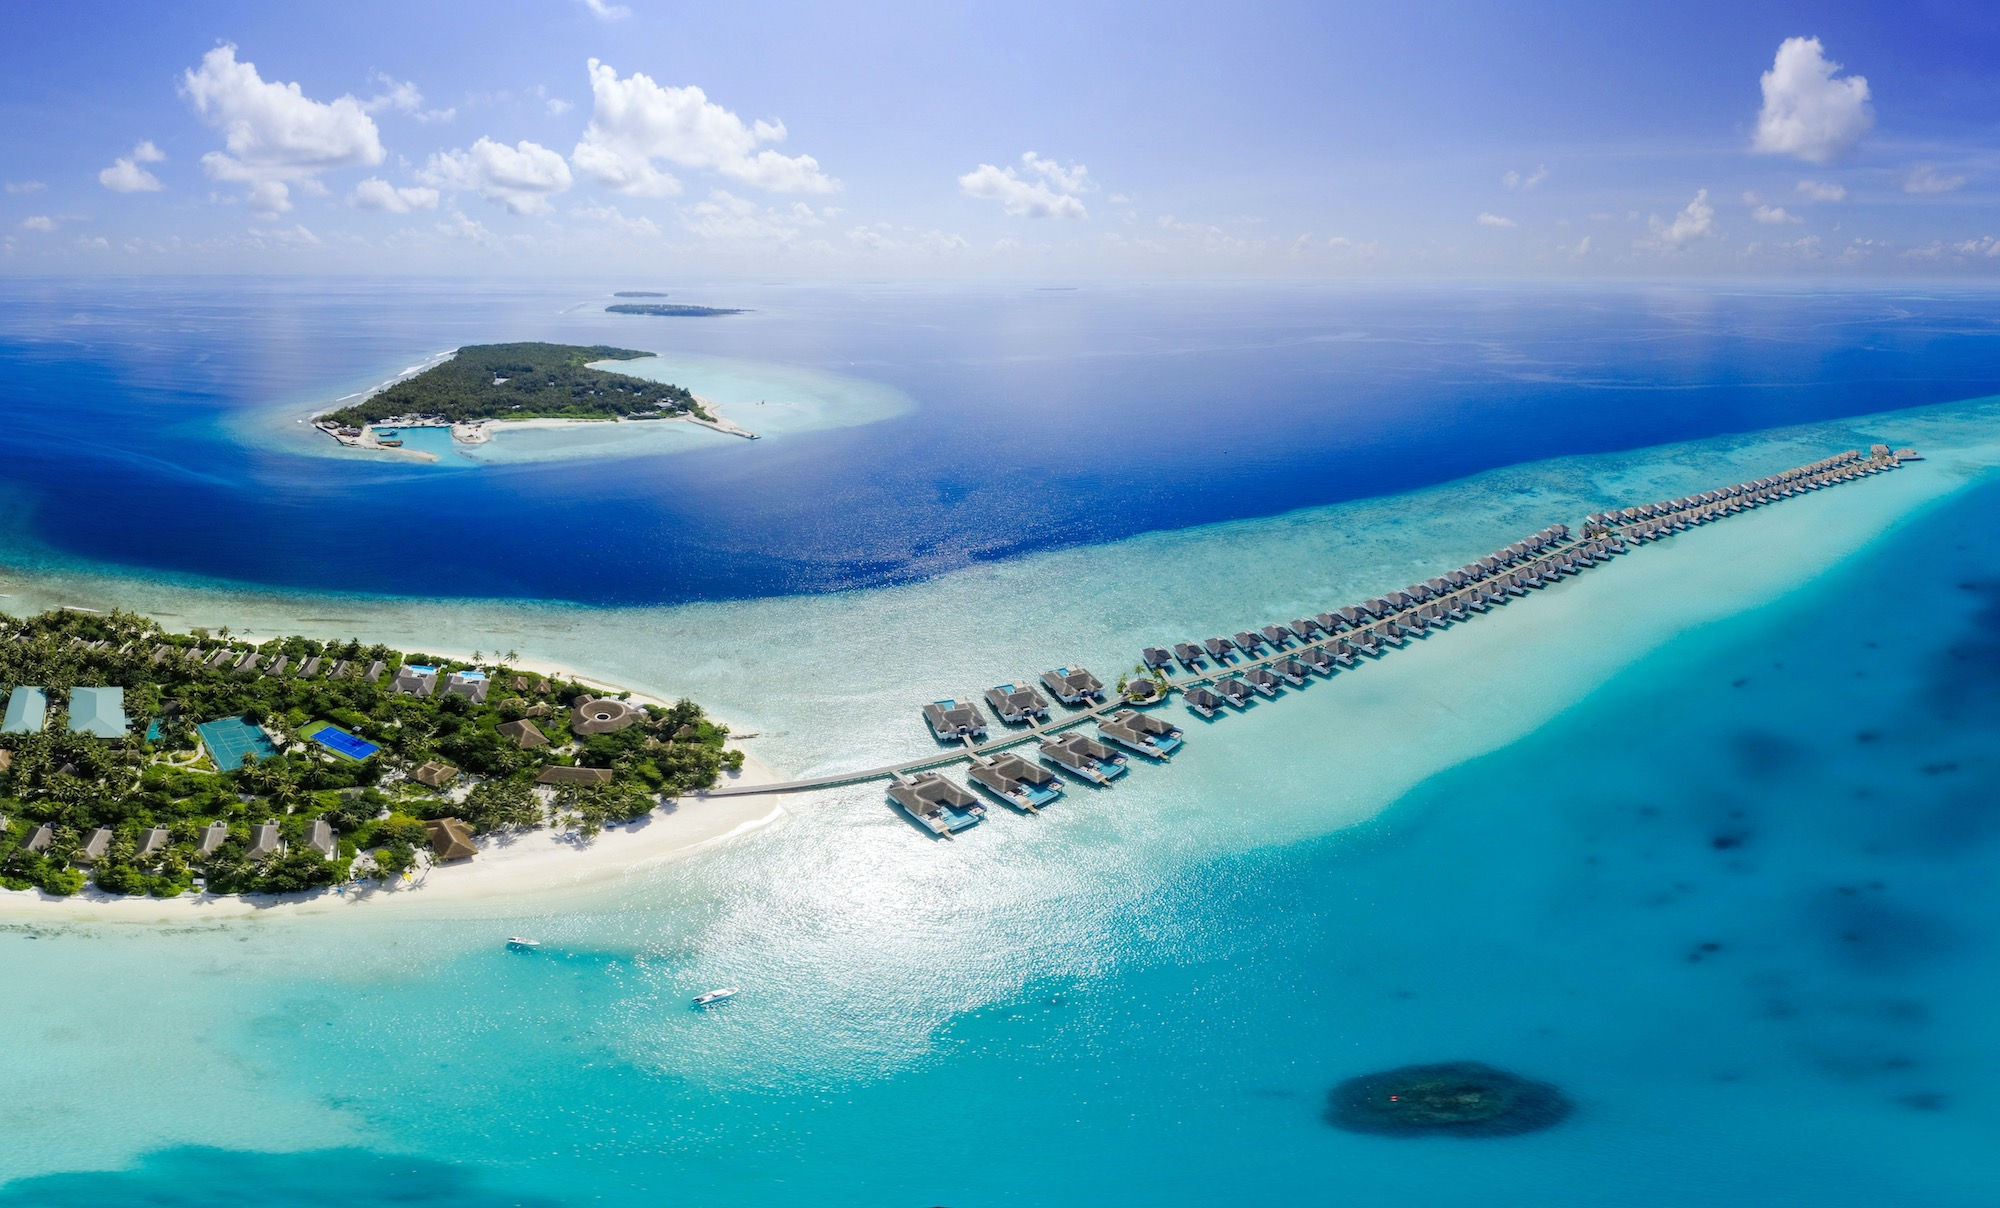 Top 10 Best Luxury Water Villas in the Maldives